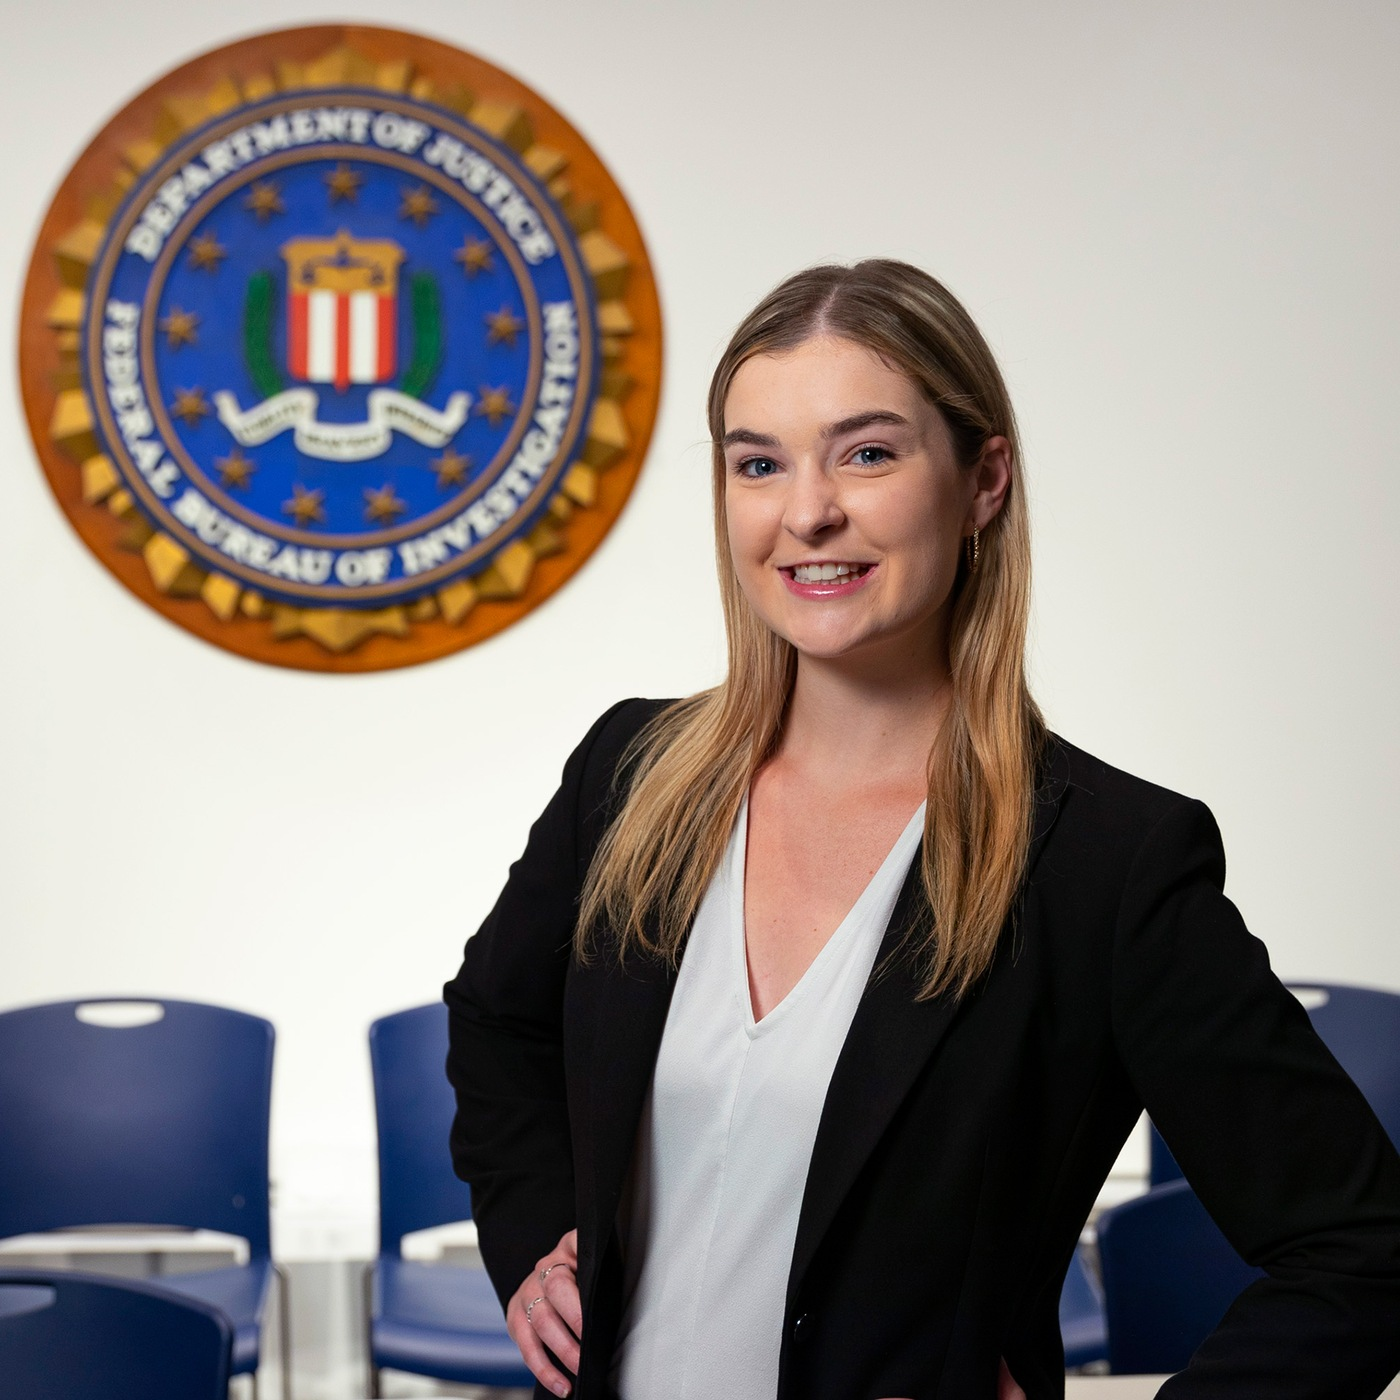 Isabella was an FBI honors intern in summer 2021.